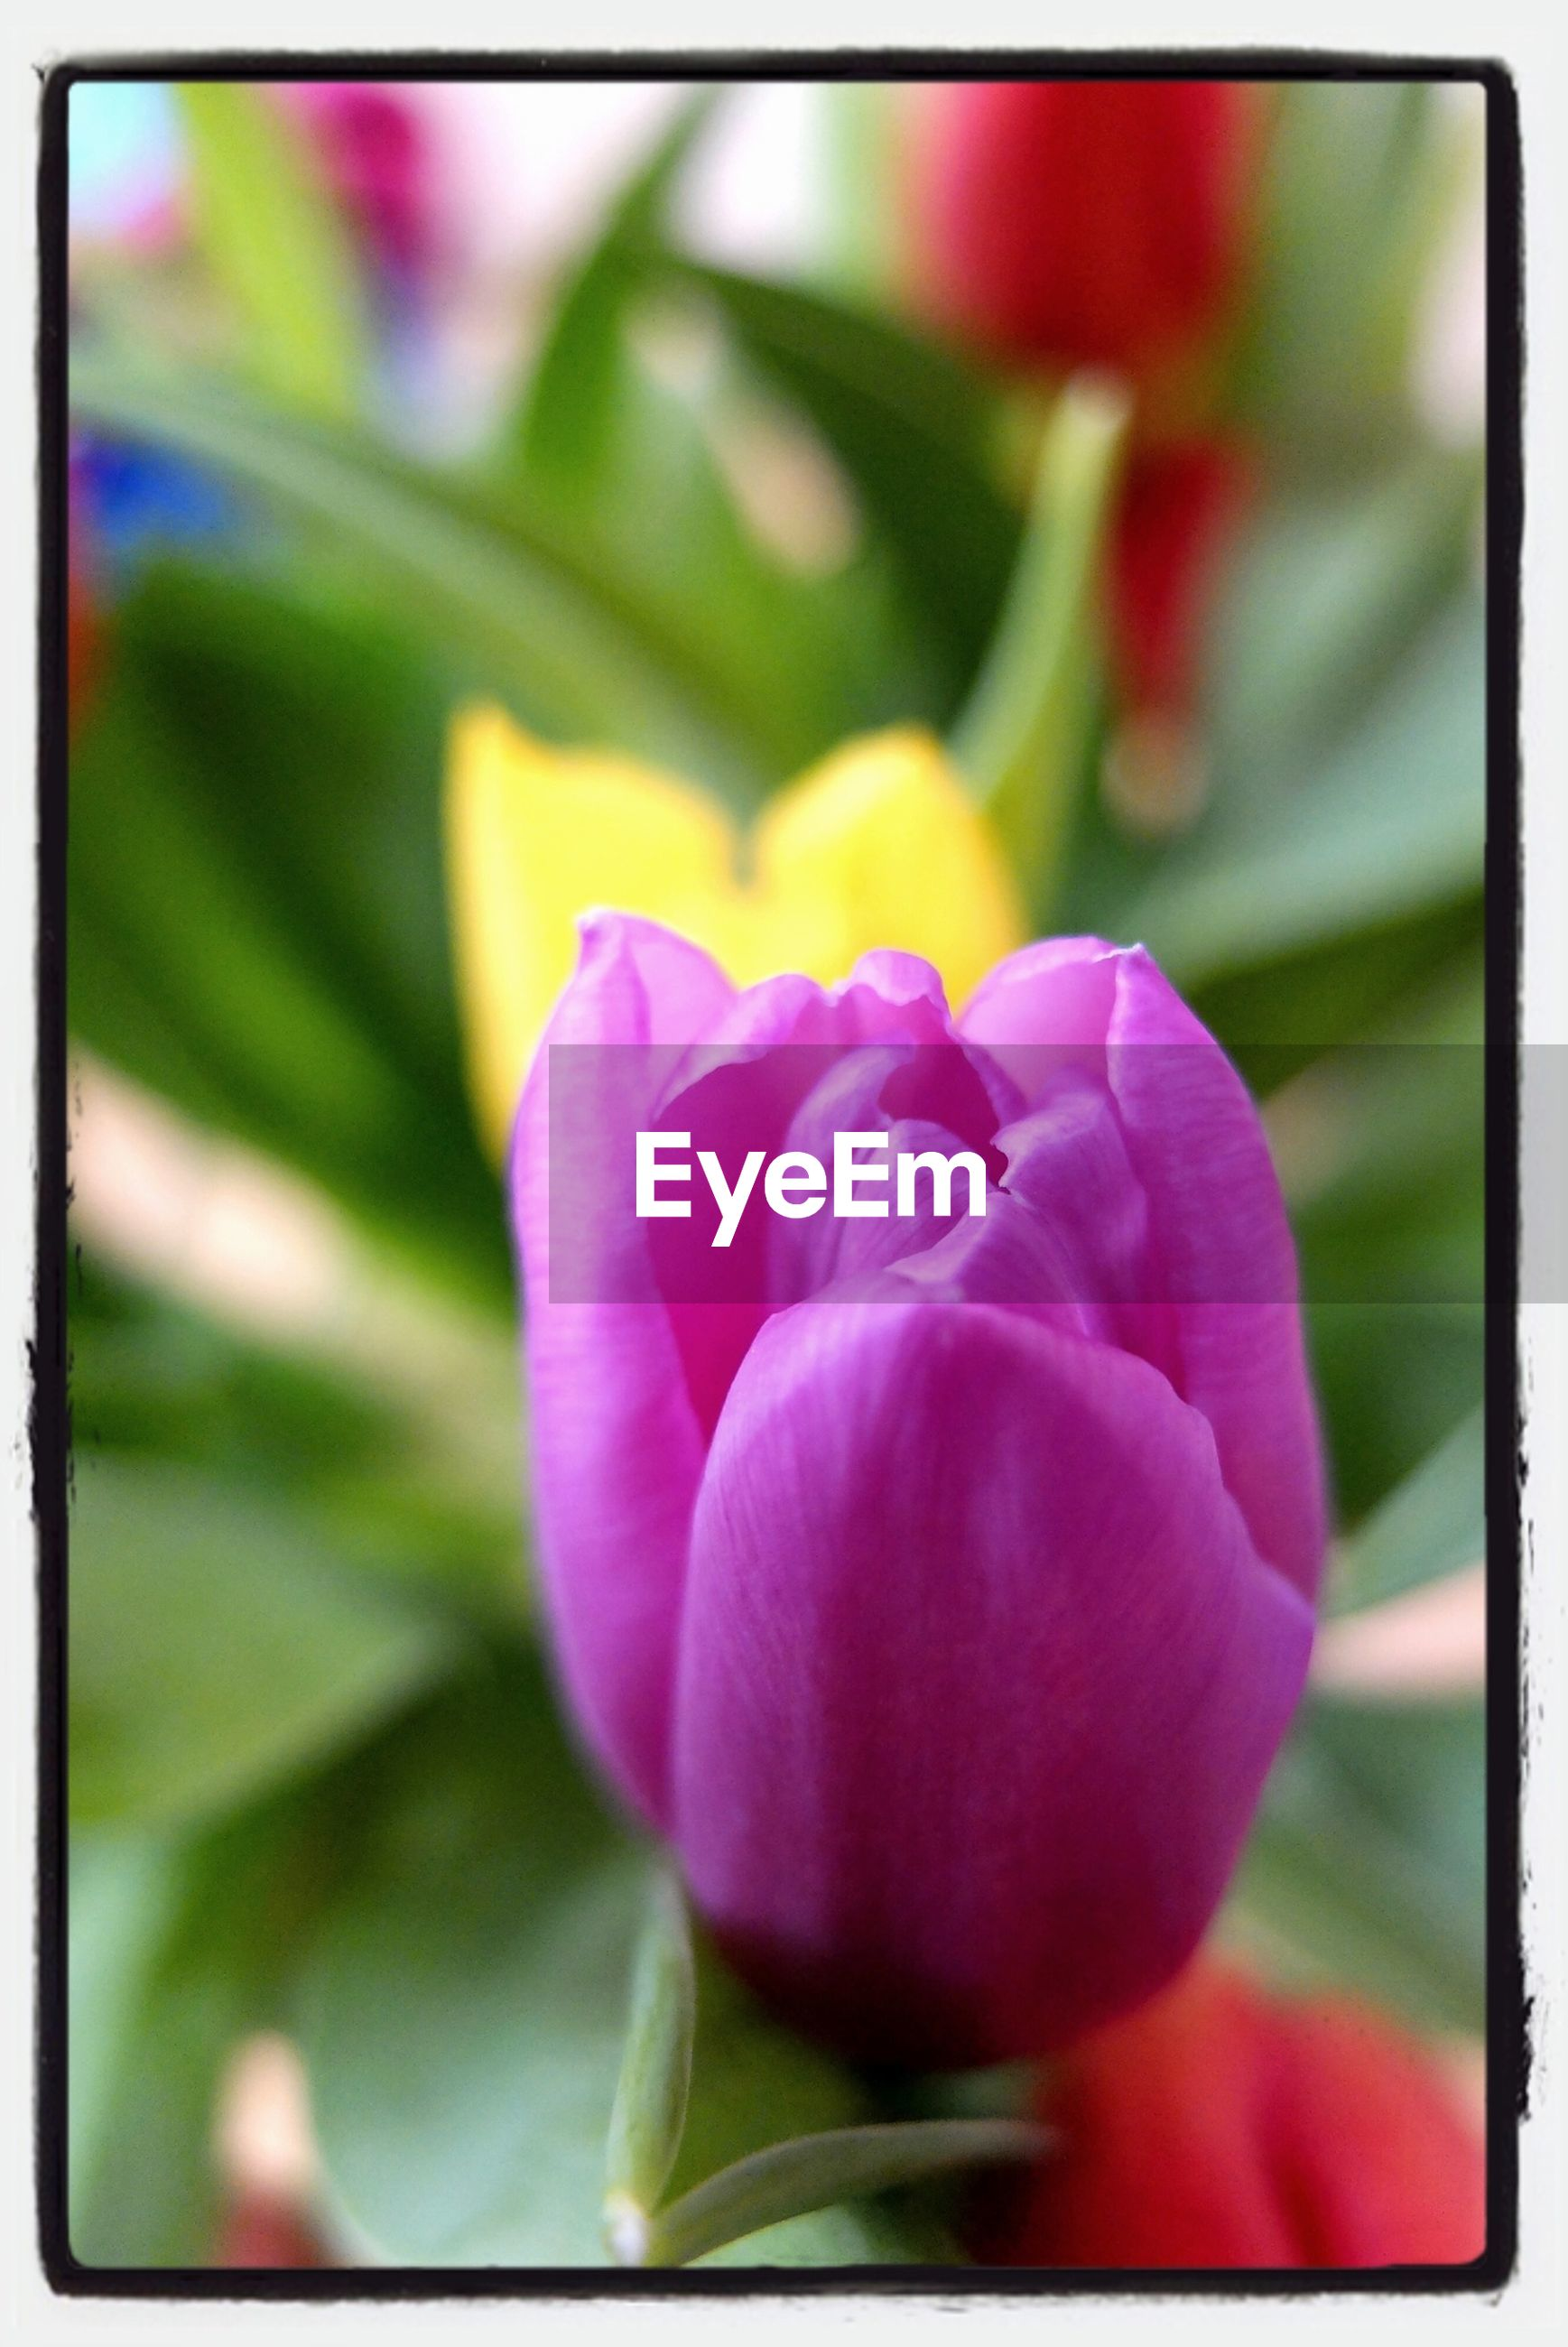 flower, petal, transfer print, flower head, freshness, fragility, growth, close-up, beauty in nature, auto post production filter, focus on foreground, blooming, nature, plant, single flower, purple, pink color, in bloom, blossom, selective focus